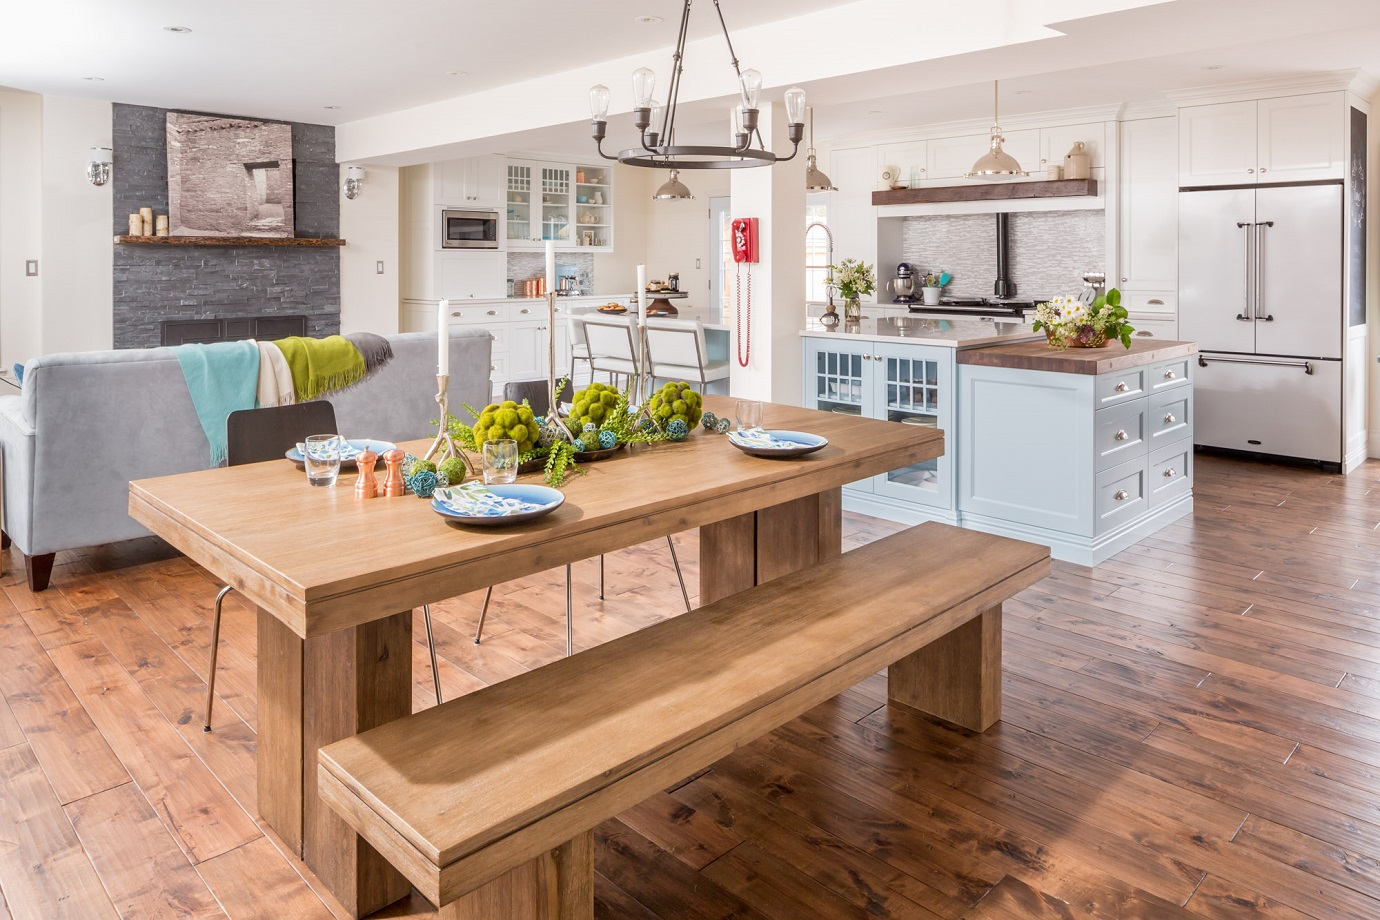 Best of houzz 2015 awards news paragon kitchens for Small house design houzz